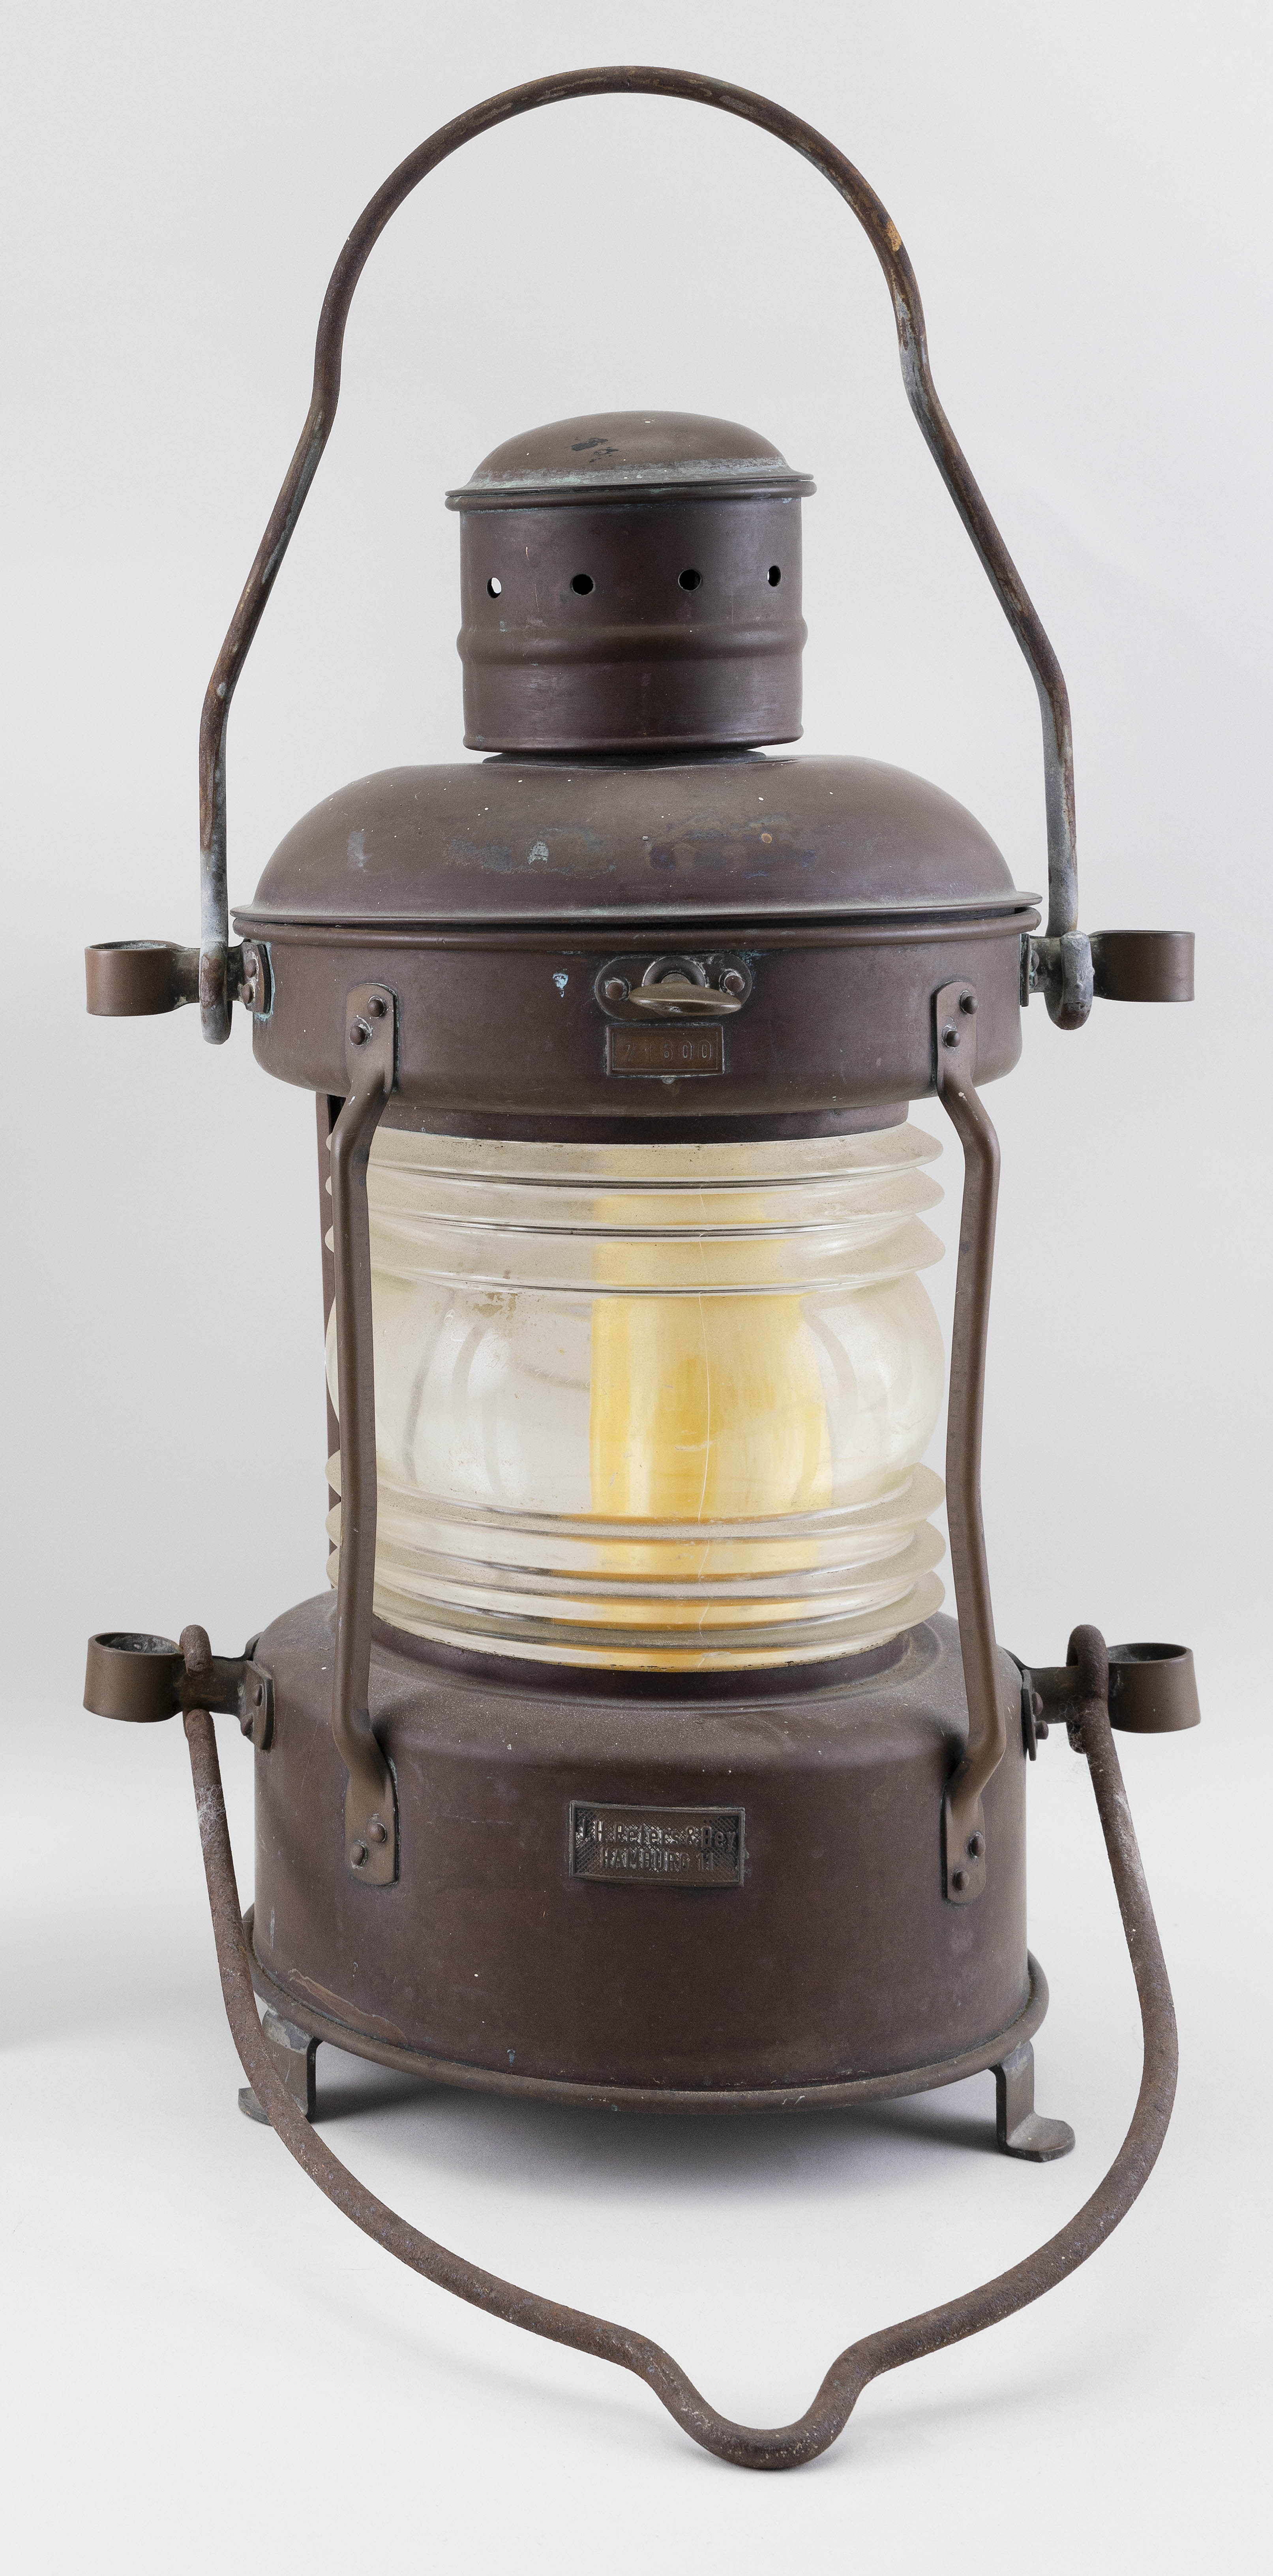 """J.H. PETERS & BEY SHIPS LANTERN Early 20th Century Height 19"""". Diameter at rings 13""""."""